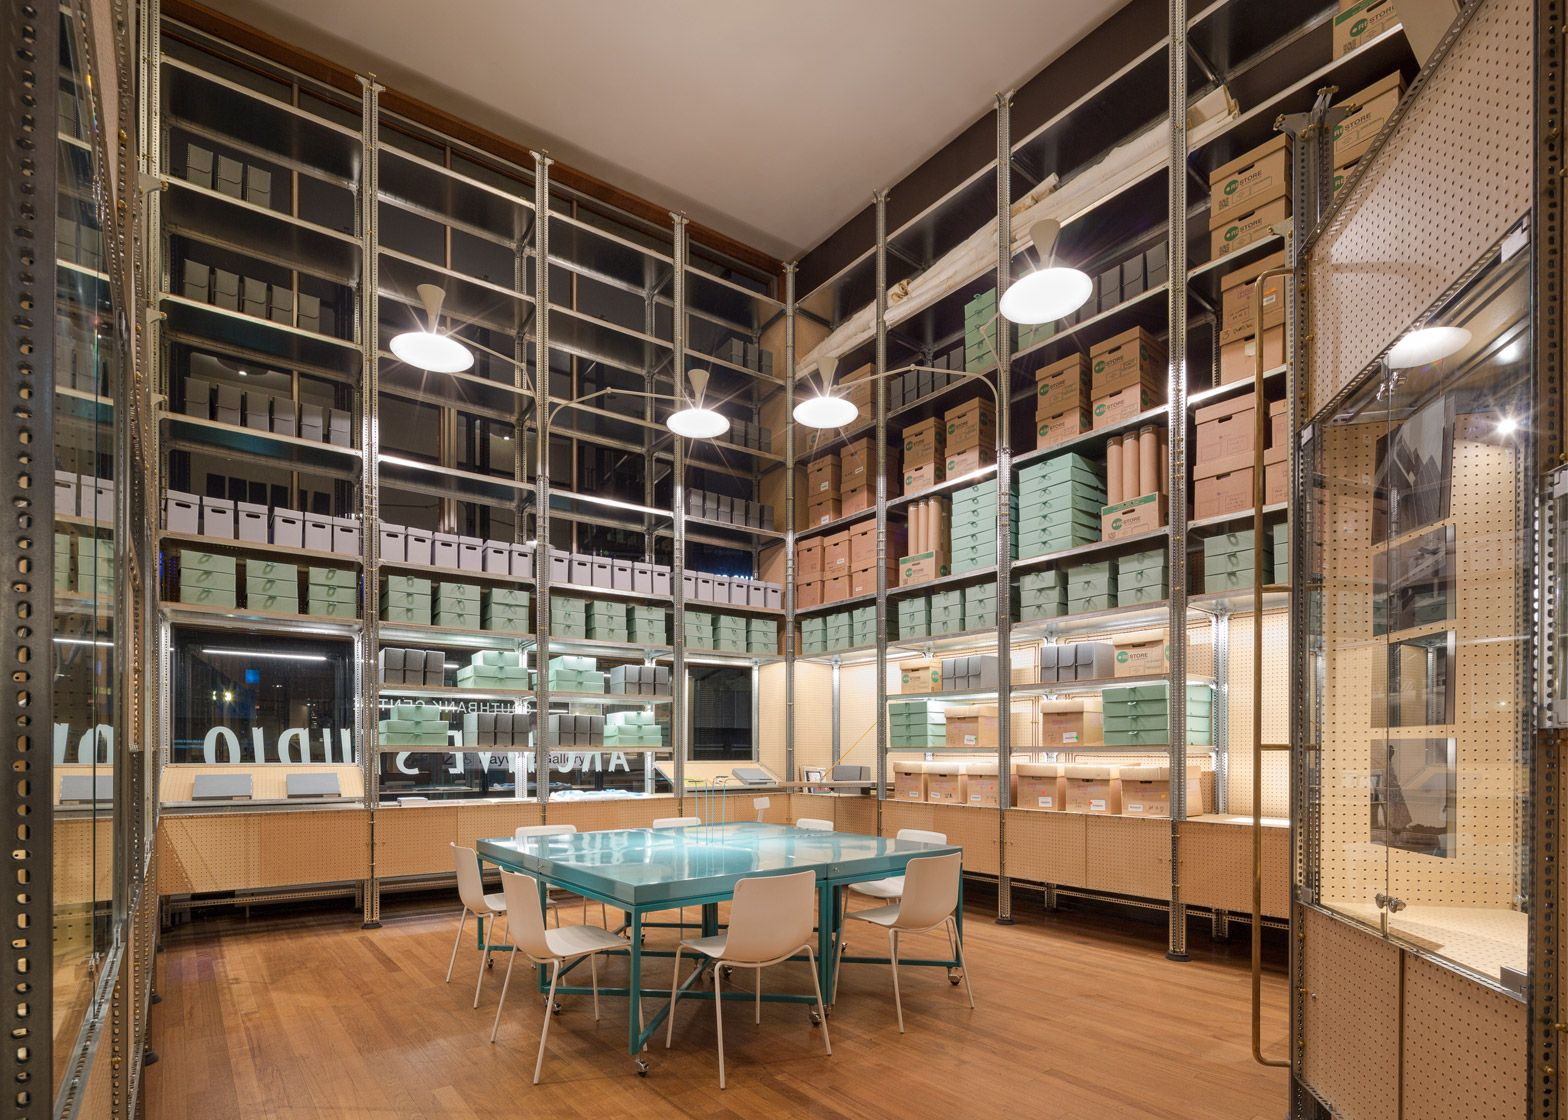 New Southbank Centre archive utilises 1950s shelving system